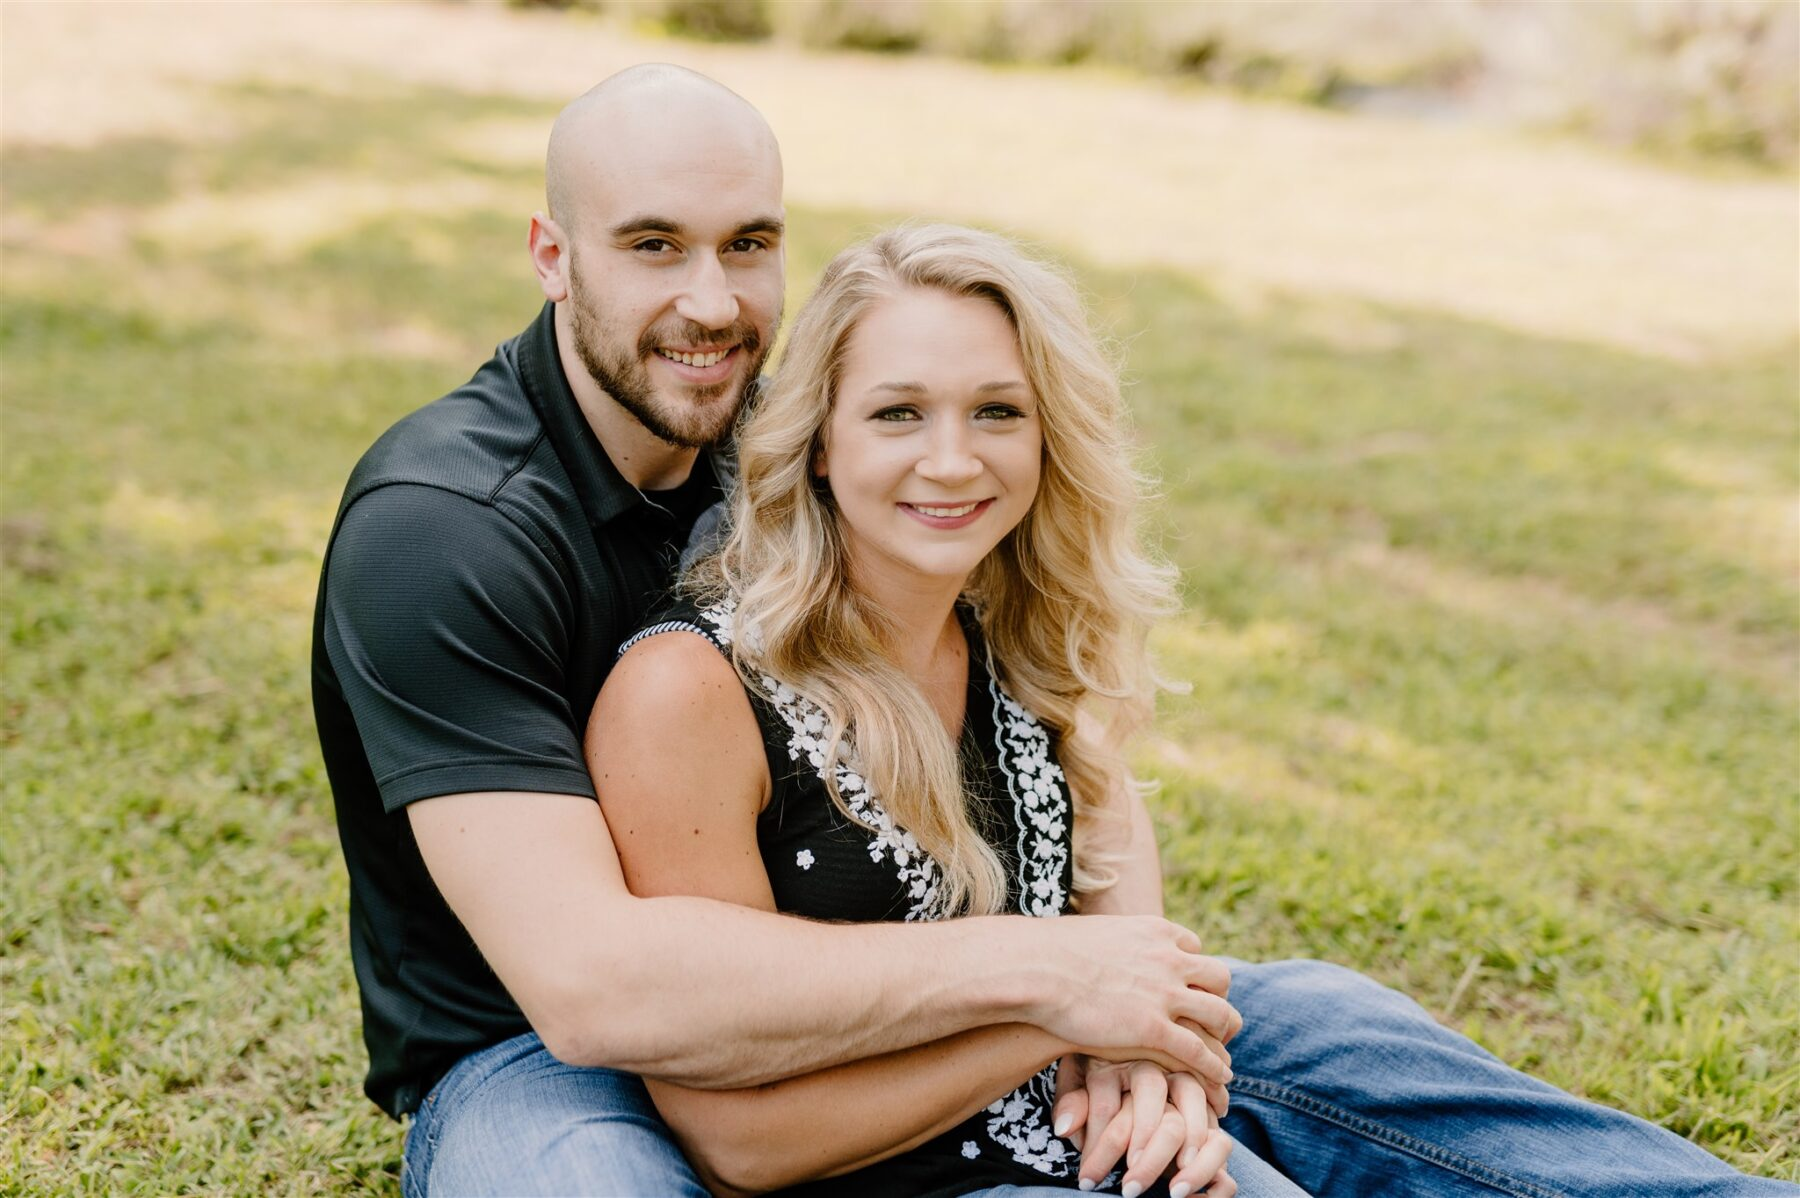 Scenic Engagement Session at Menkveld Farm captured by Sara Bill Photography